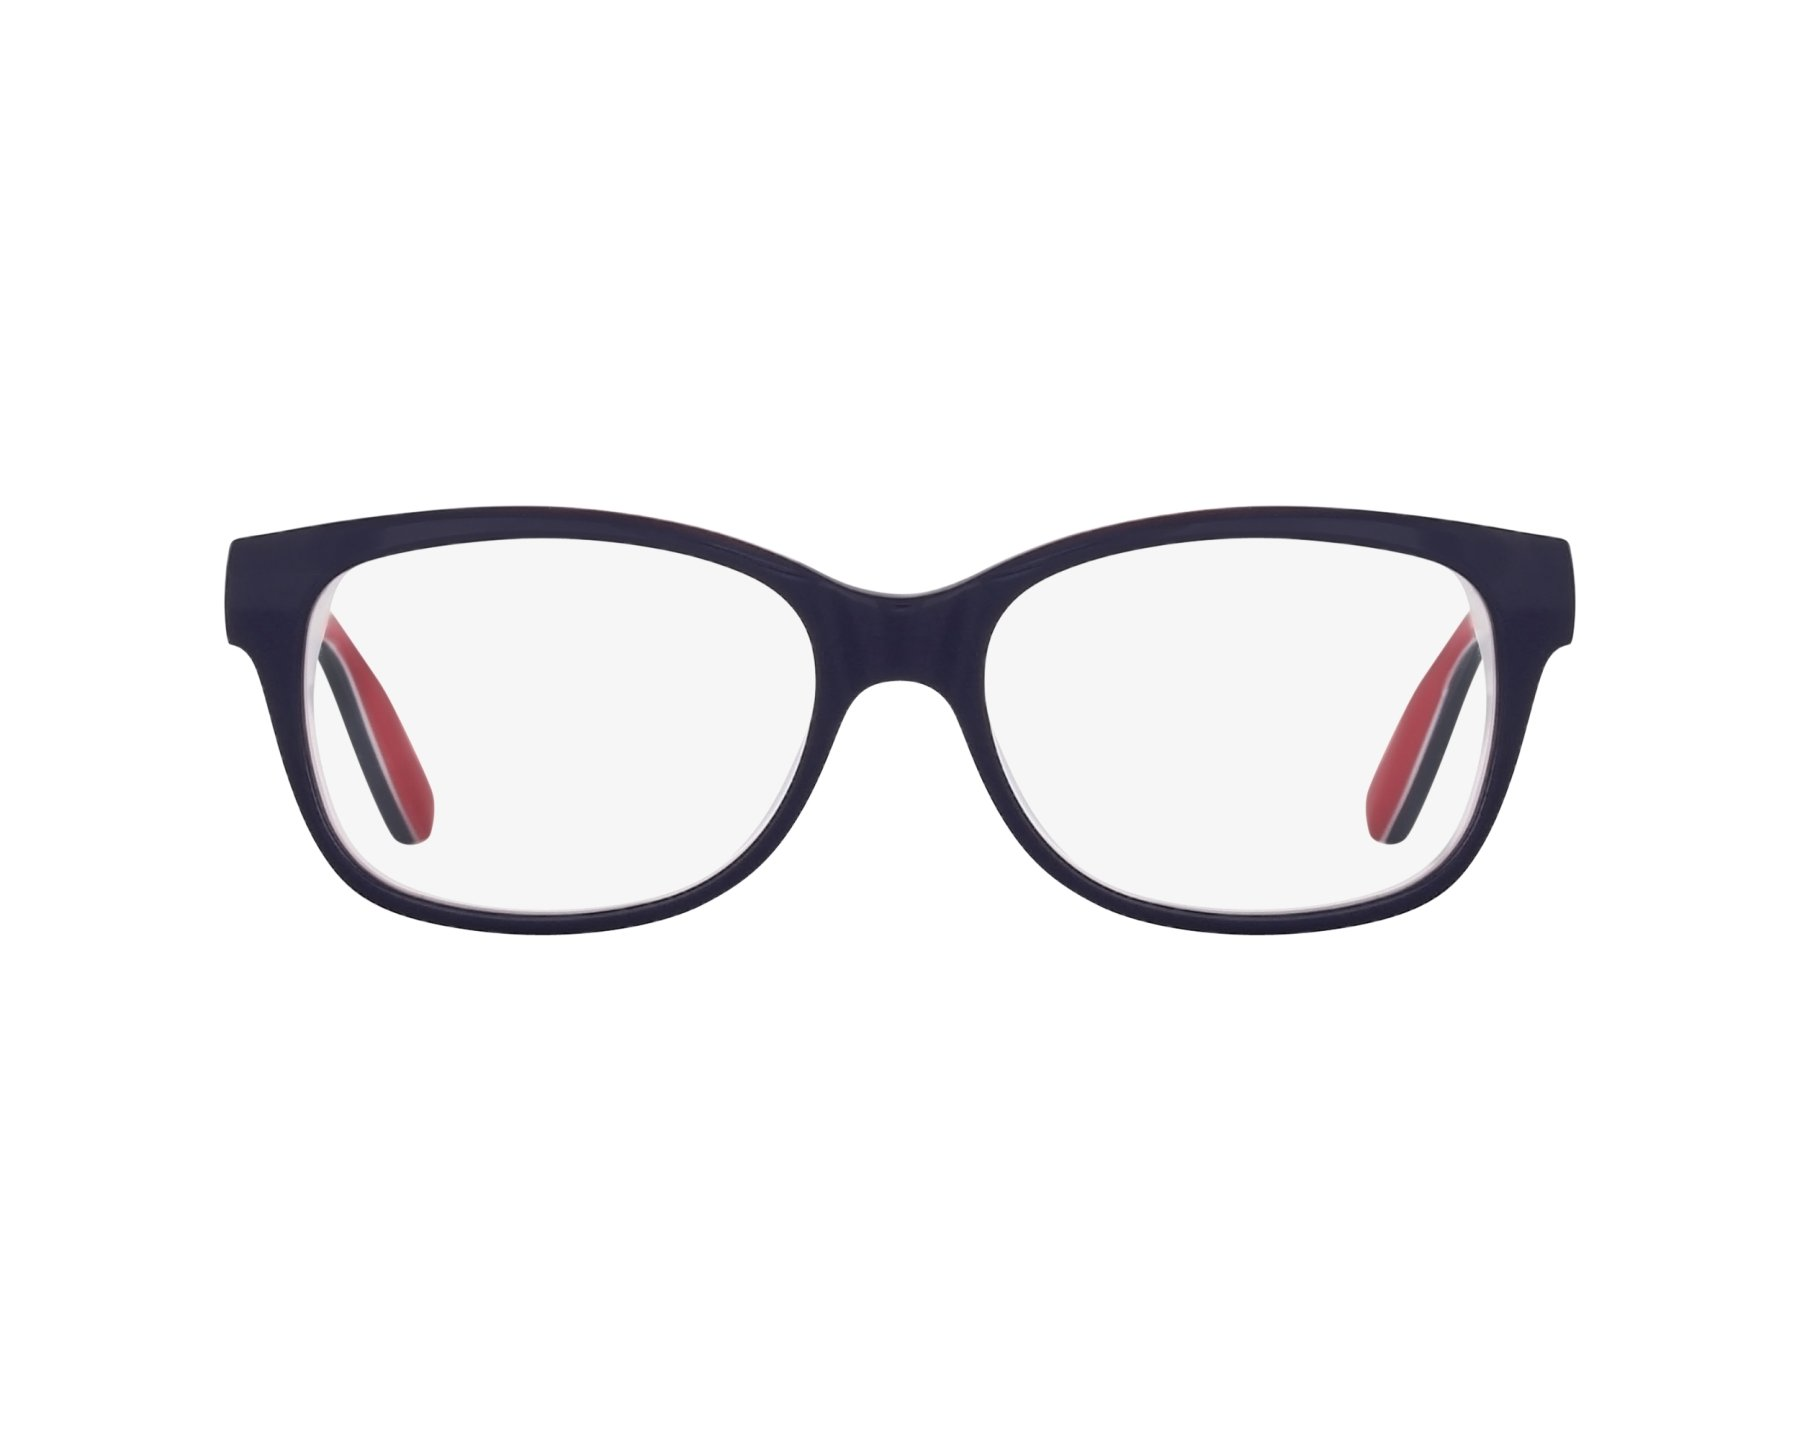 eyeglasses Tommy Hilfiger TH-1017 UNN - Blue Red profile view e78019ca166